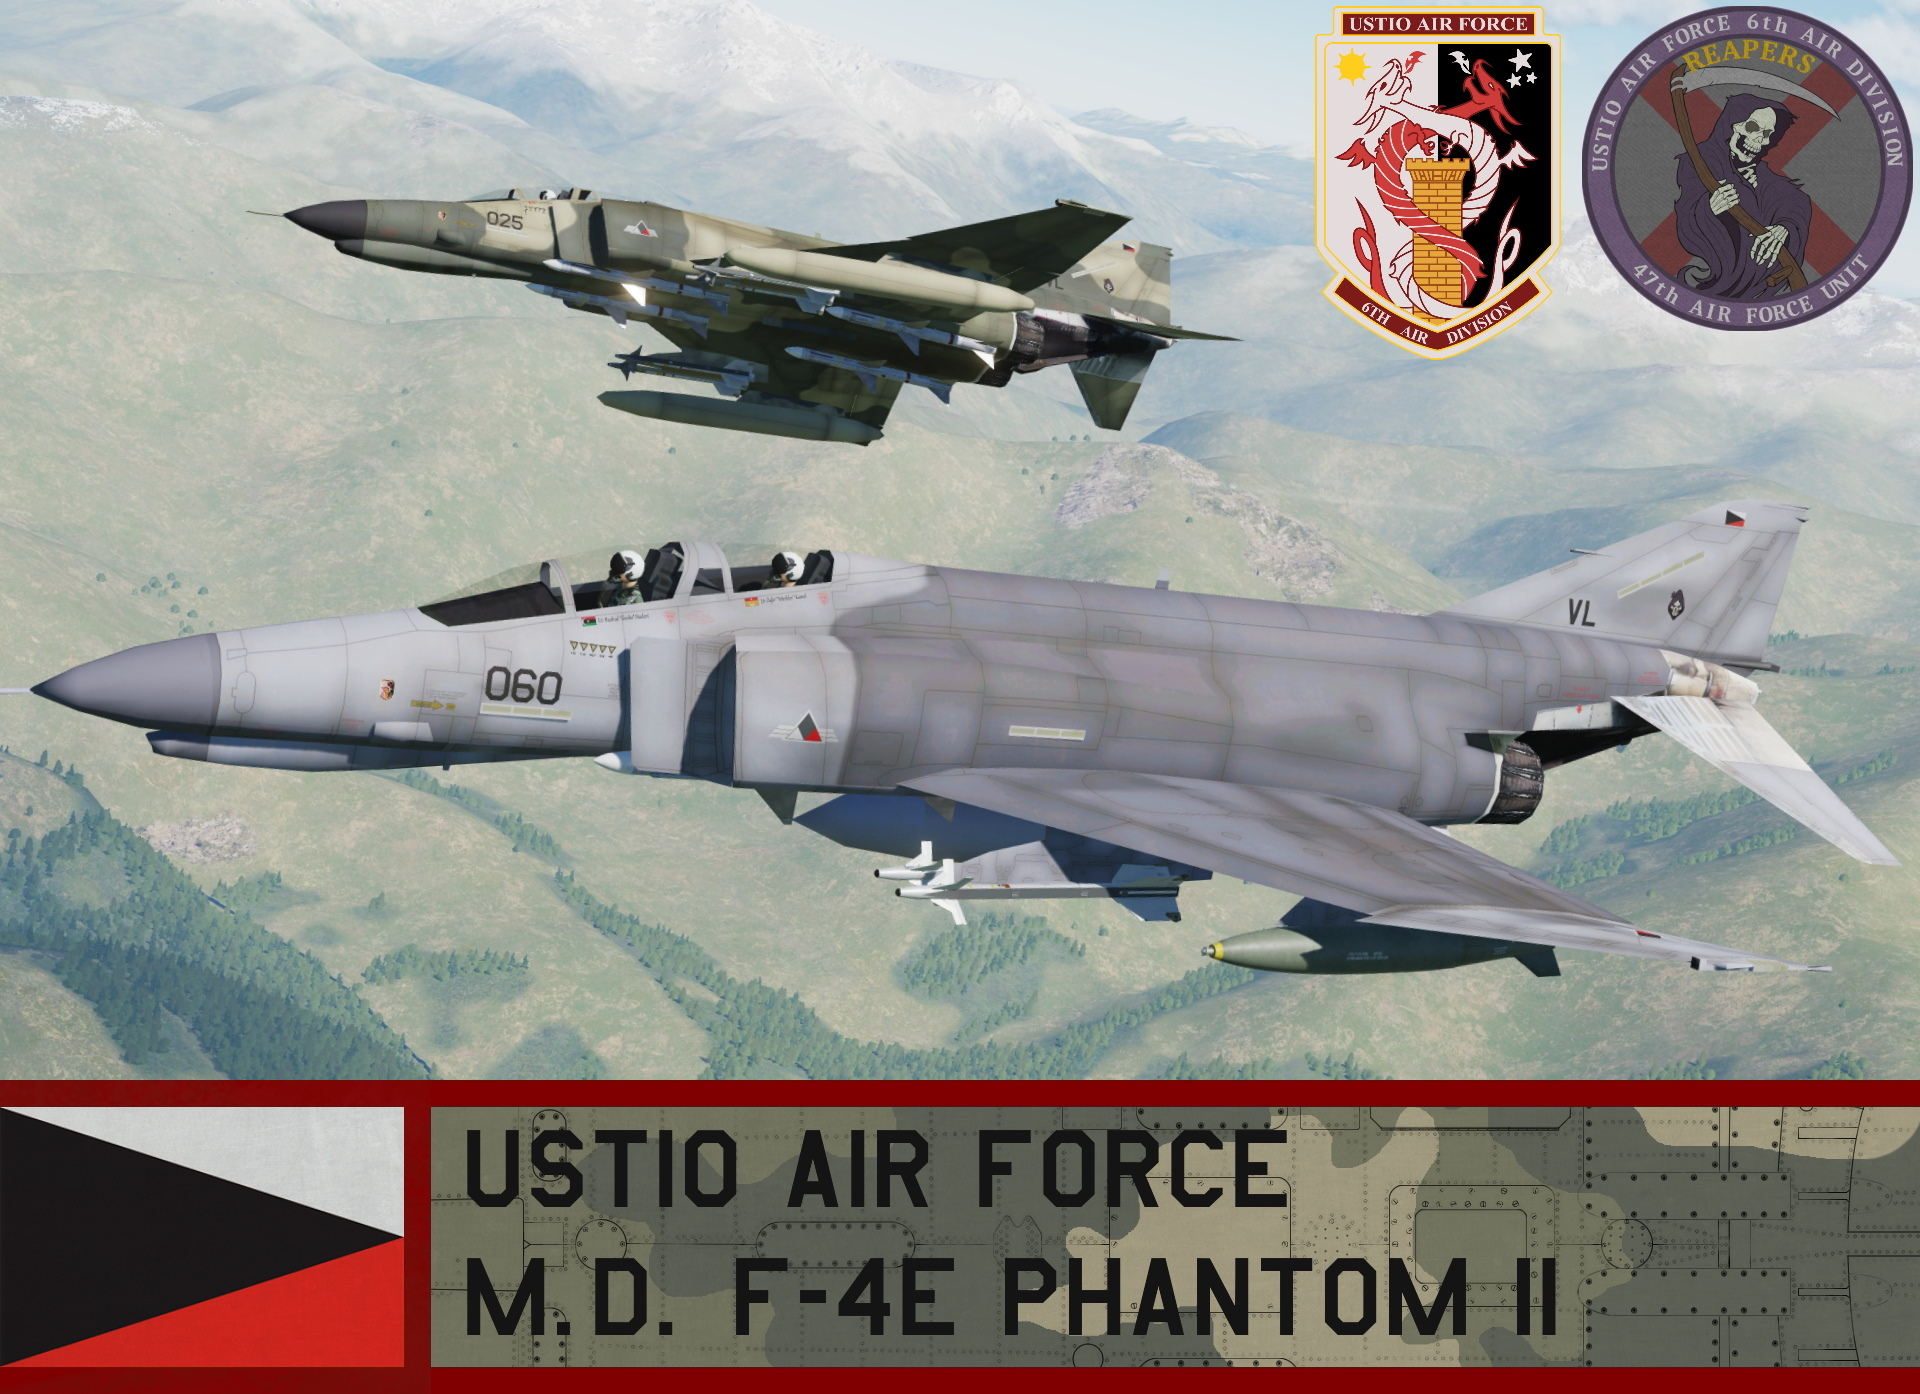 Ustio Air Force F-4E Phantom II - Ace Combat Zero (47th AFU)